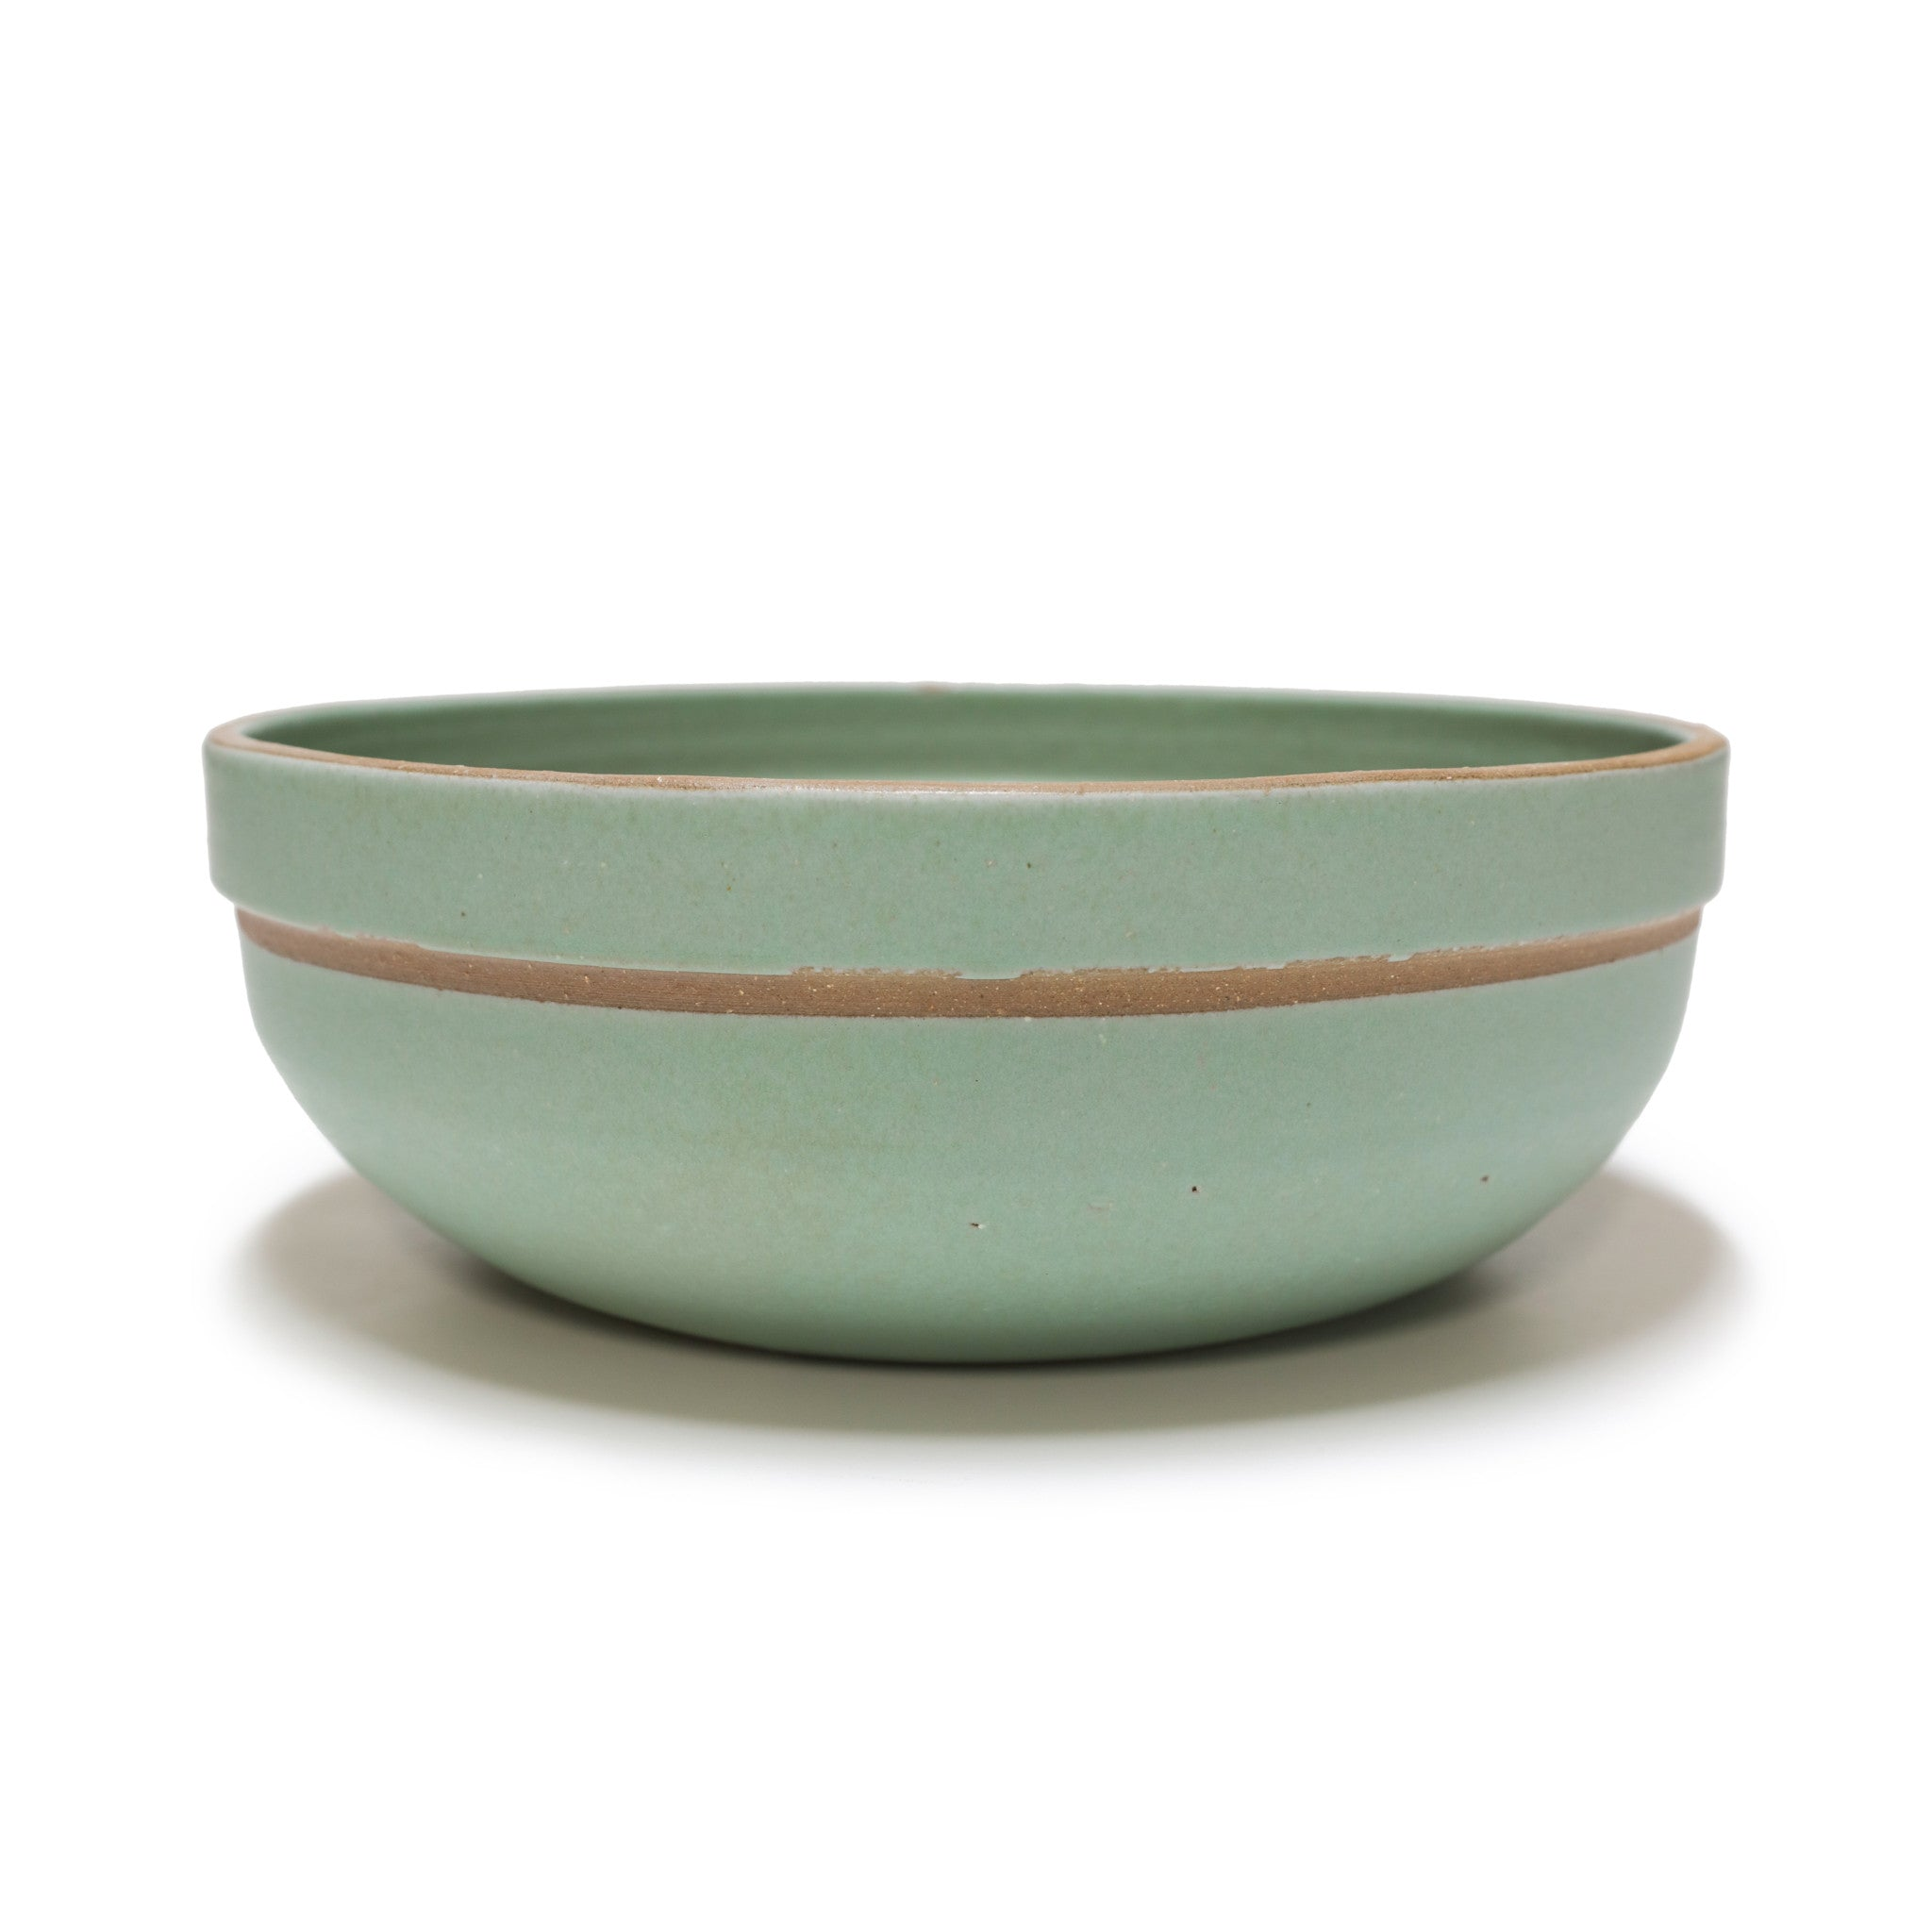 CERAMIC FRUIT BOWL - PLAIN